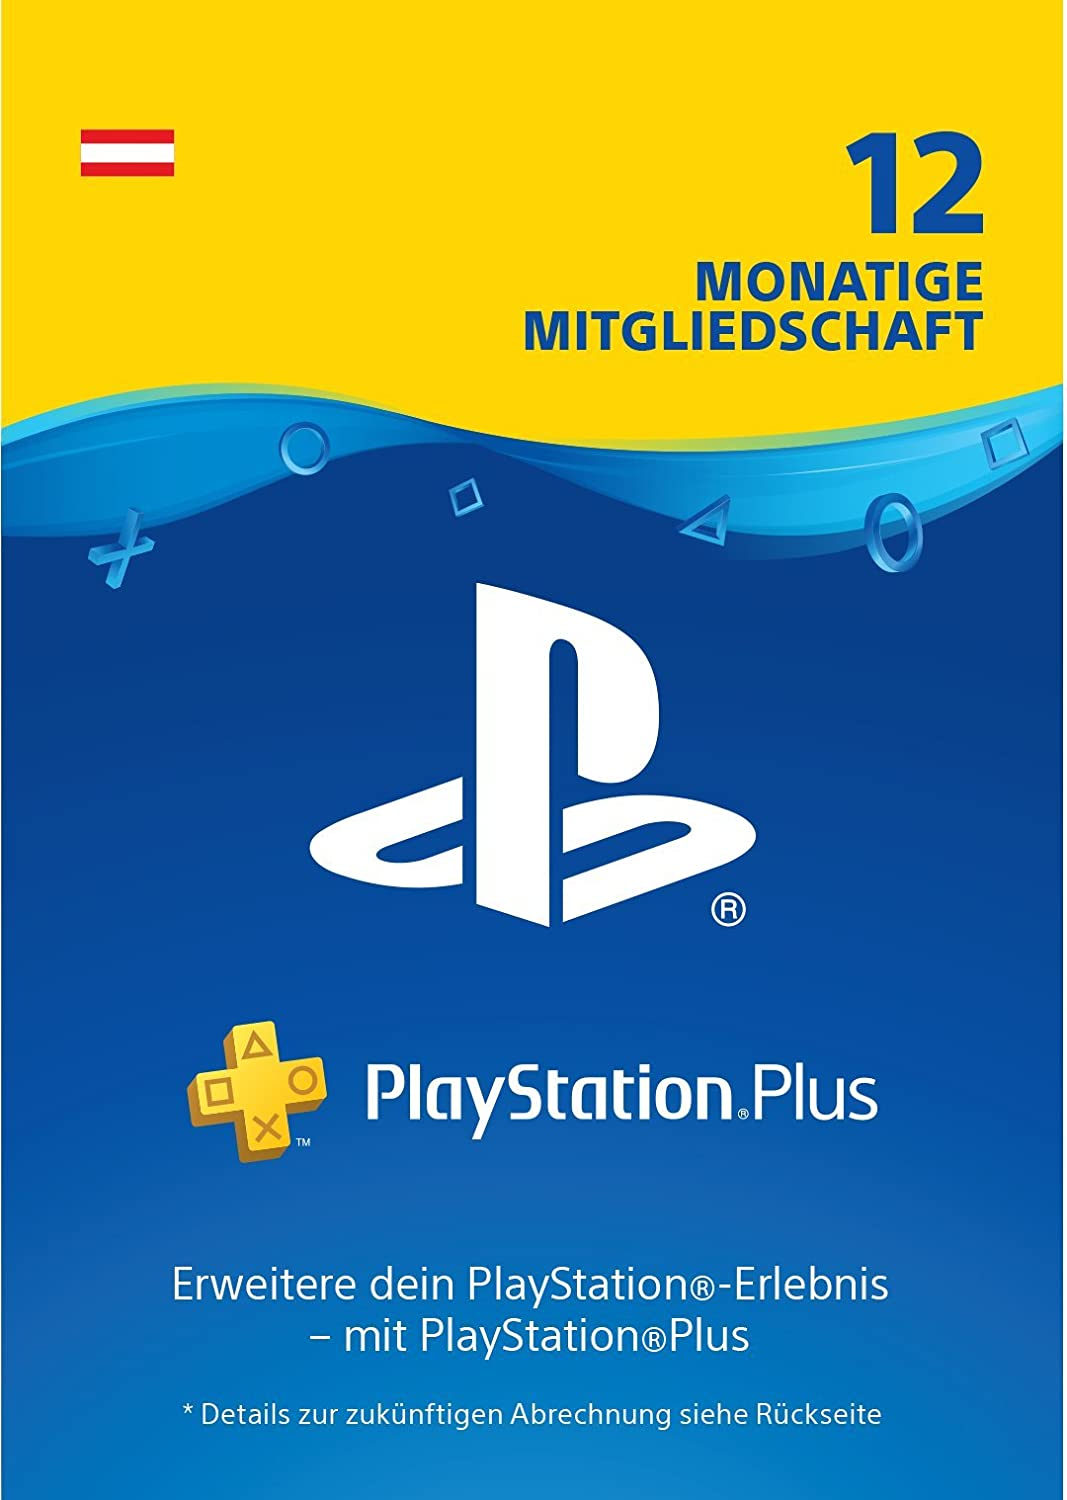 [amazon.de] Playstation Plus 12 mjeseca za 47,99€